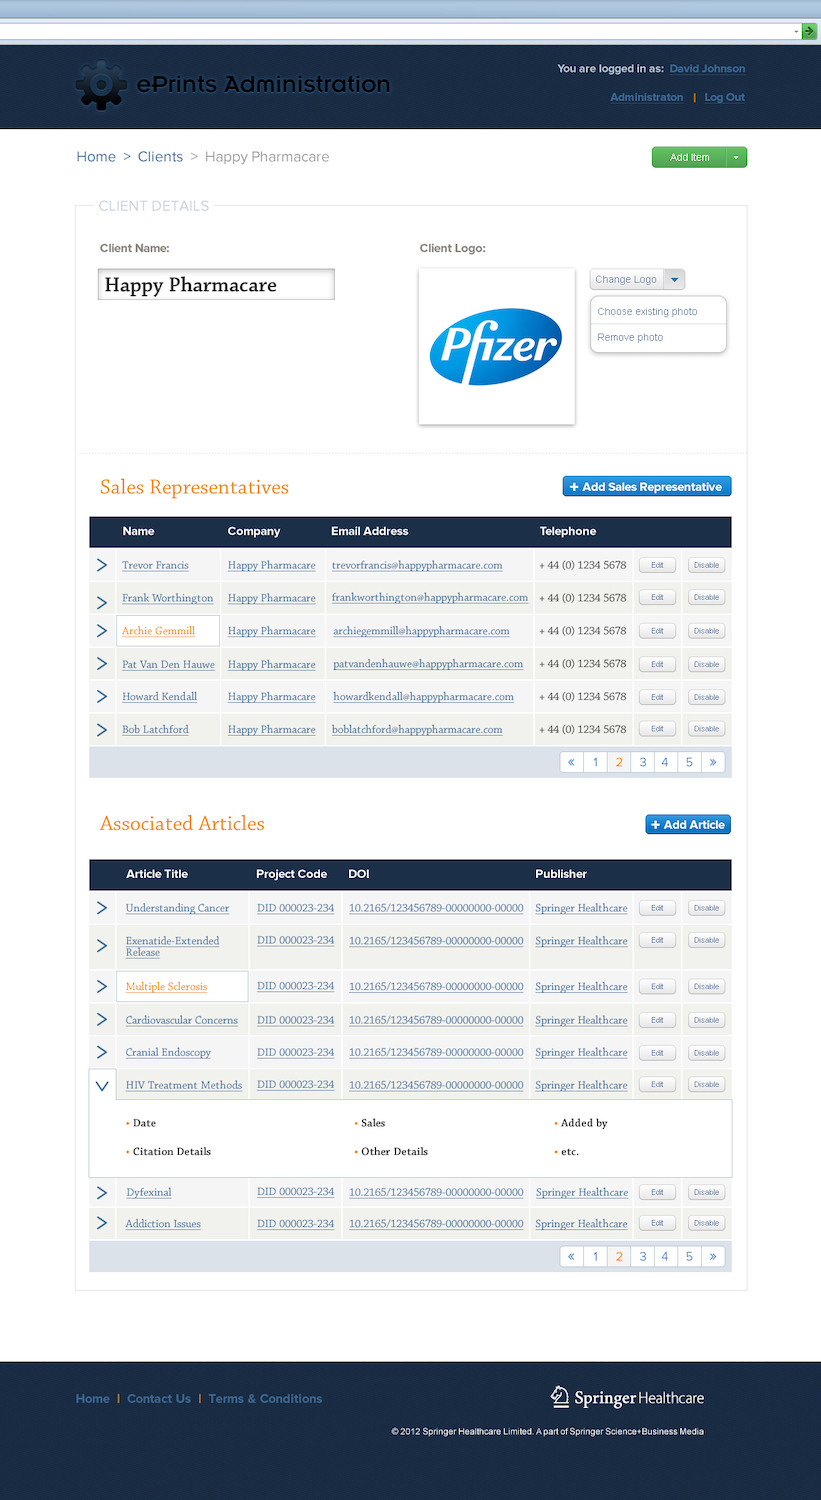 An example screen design from the MedEngine product, showing an overview of sales reps and products on offer